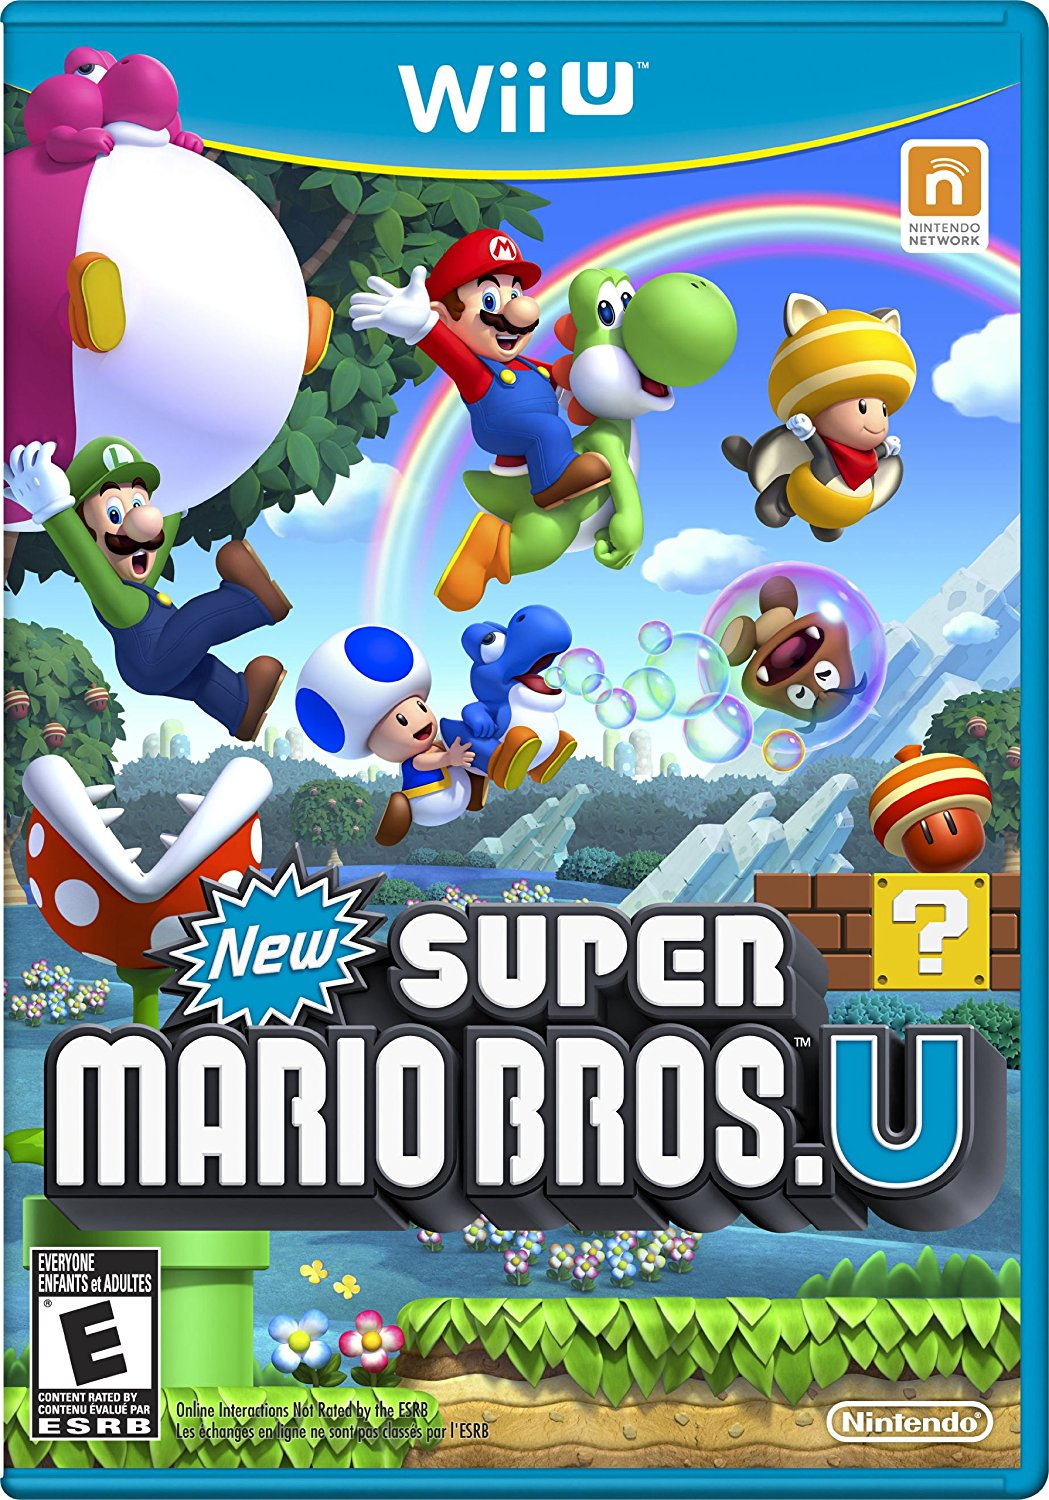 New Super Mario Bros U (Wii U/Switch): Same Old Super Mario Bros (Detailed Review)